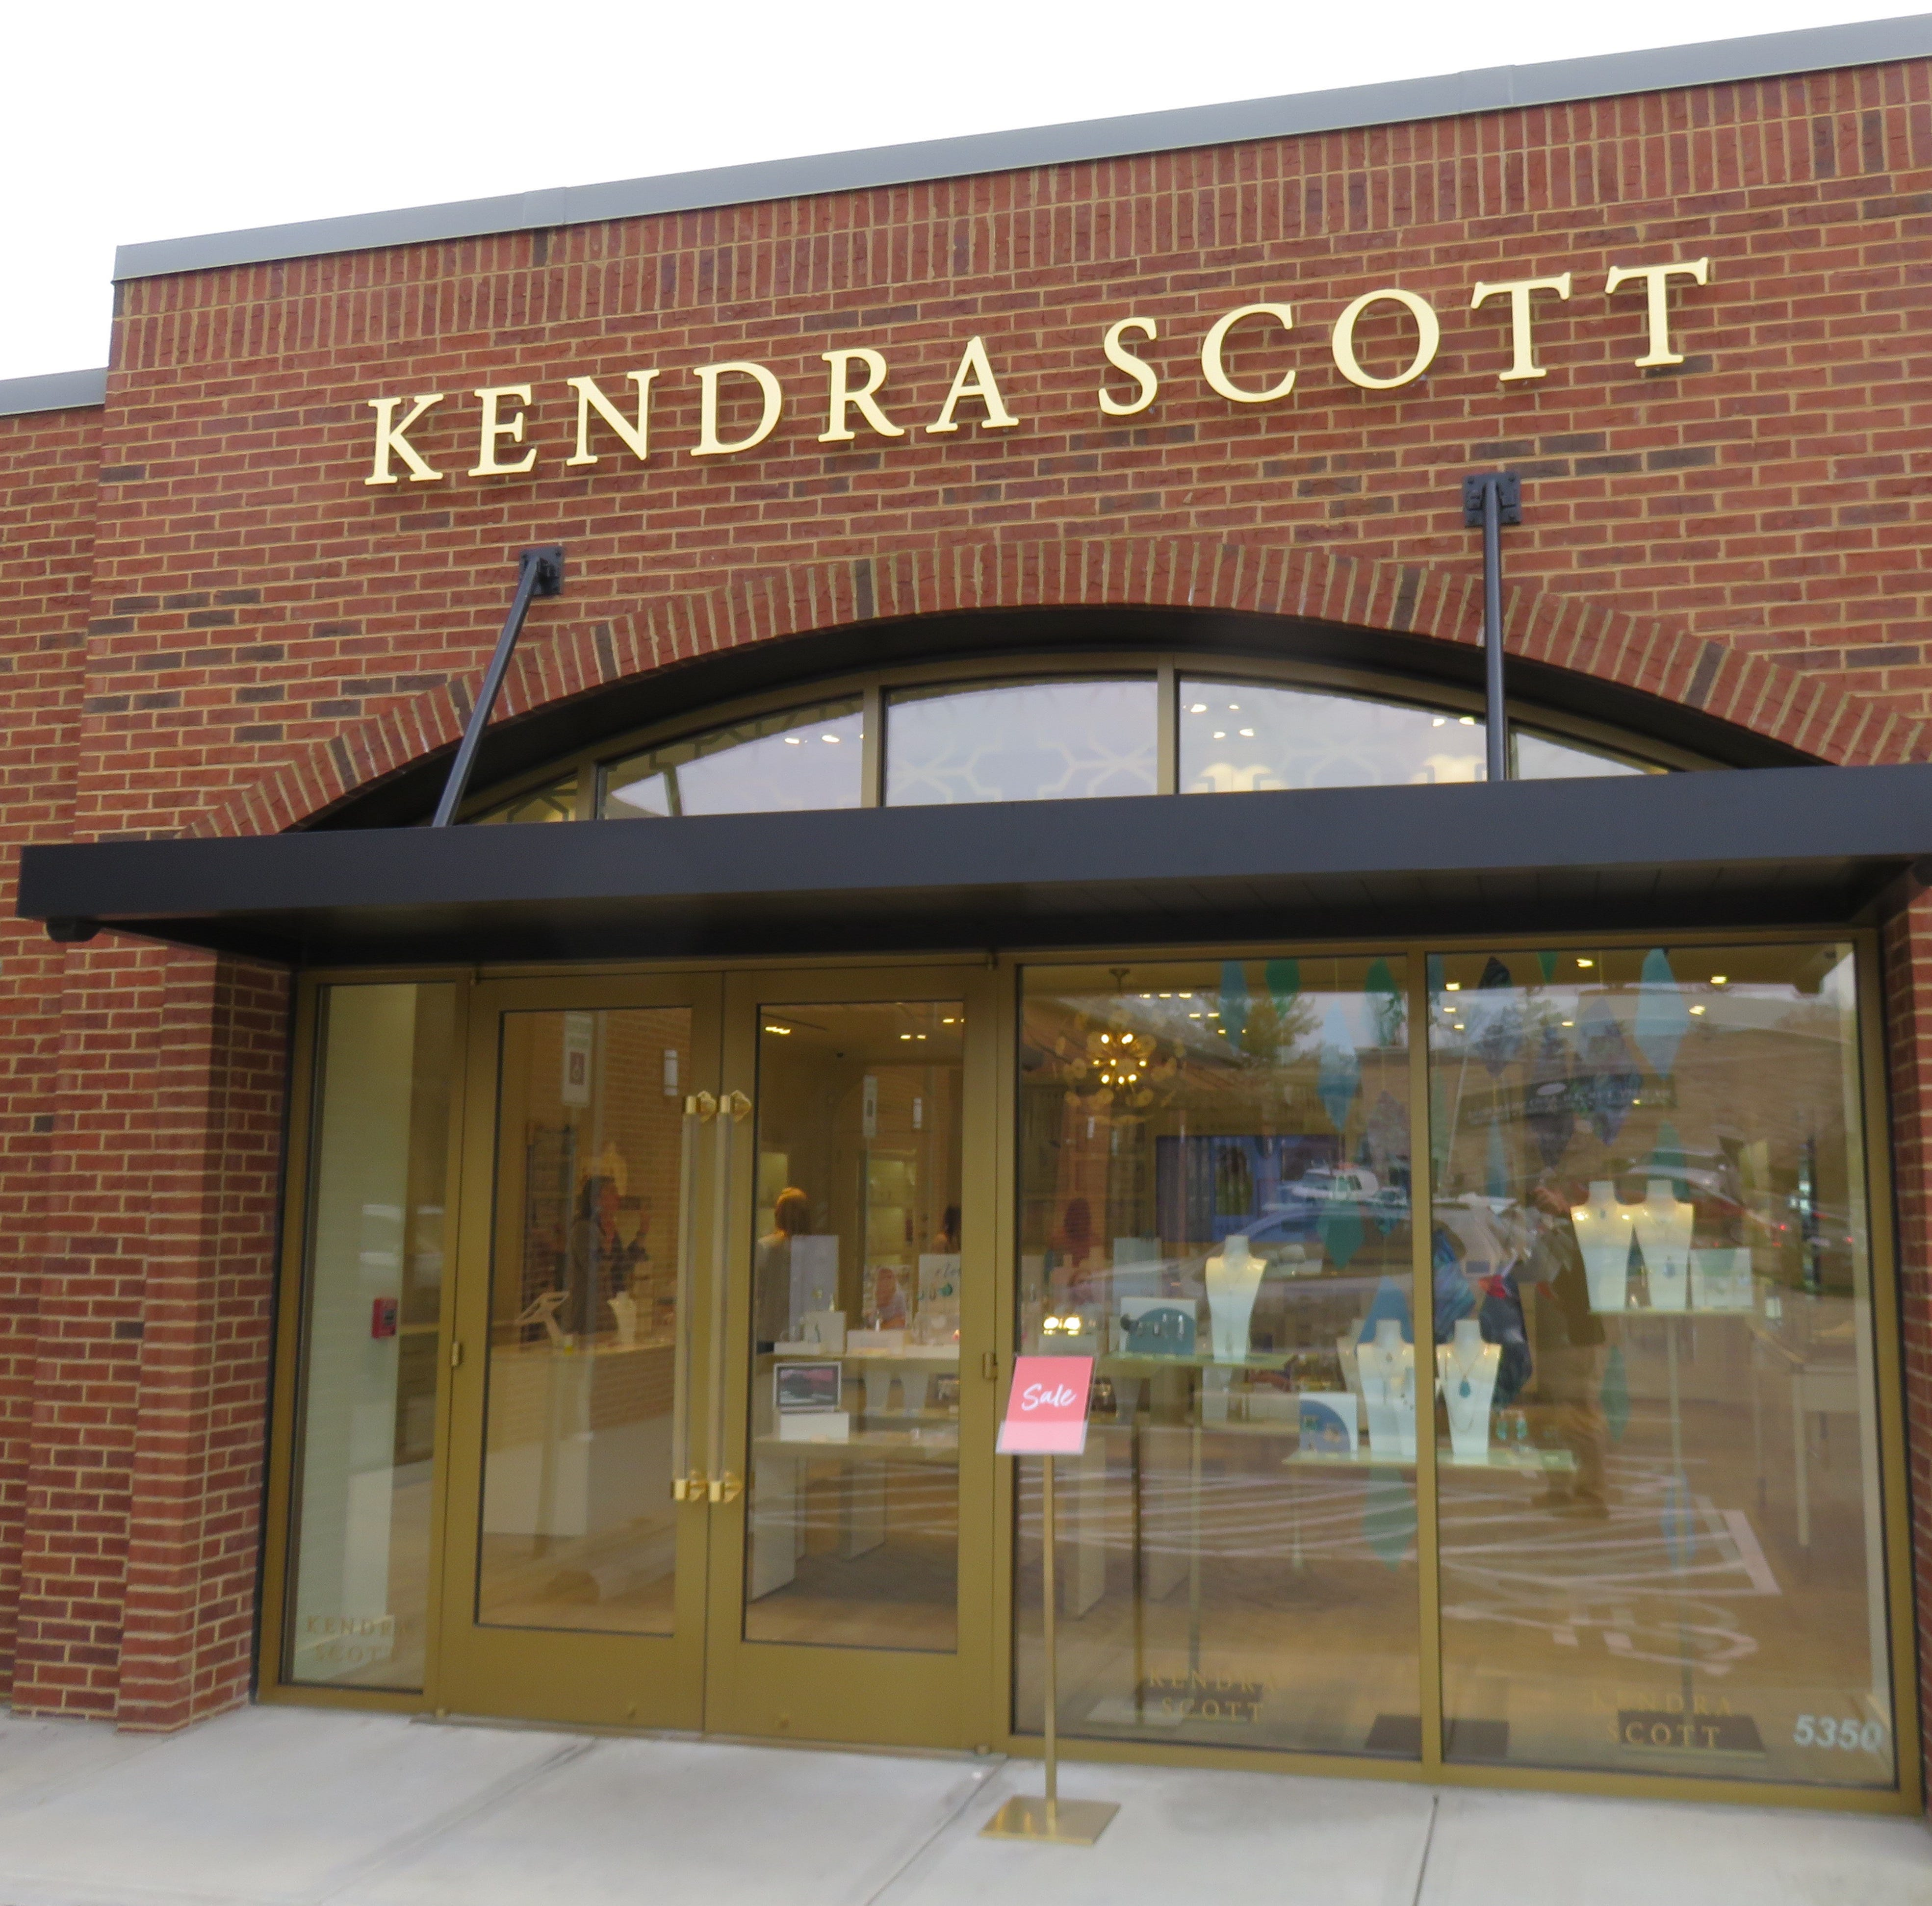 Kendra Scott custom jewelers opens Knoxville store